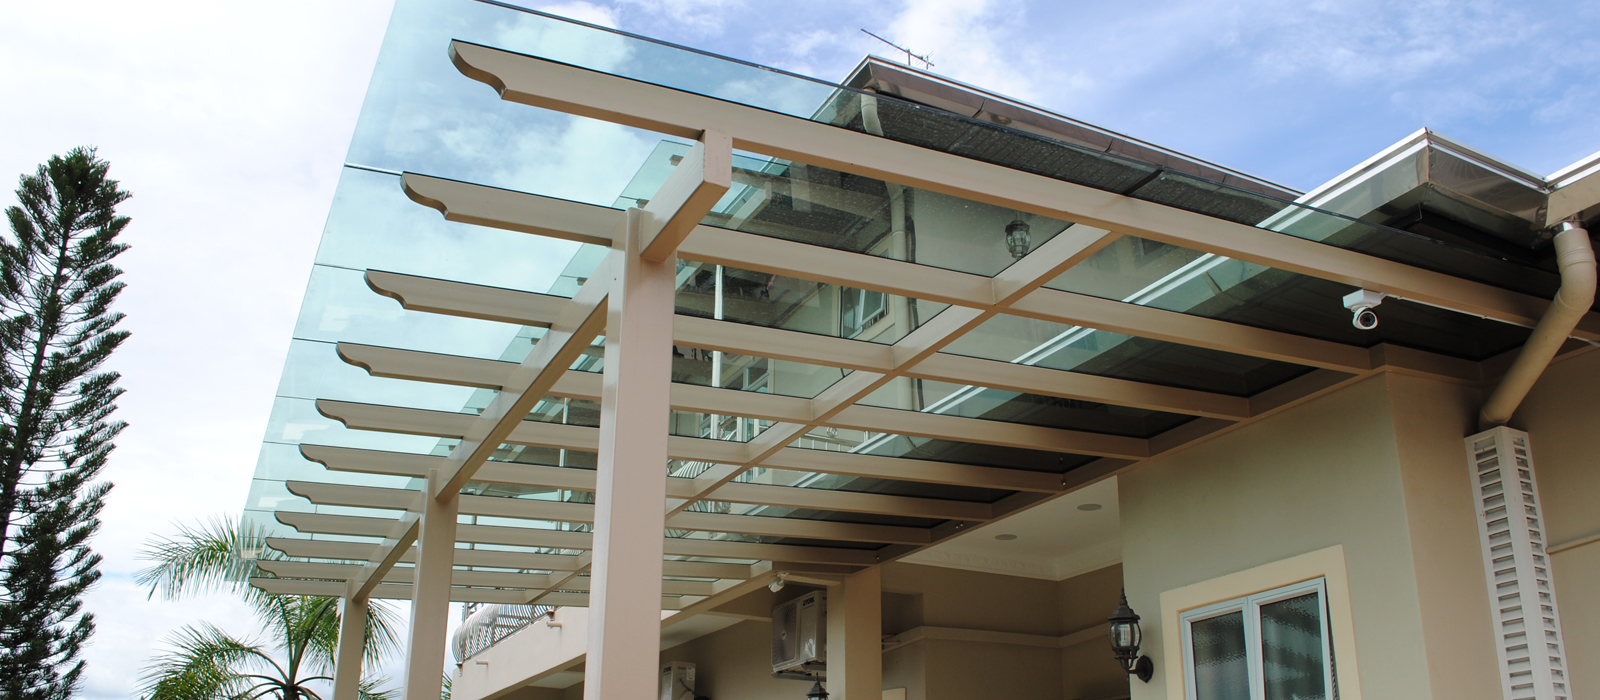 Roofing Tiles Malaysia Polycarbonate Awning Glass Skylight